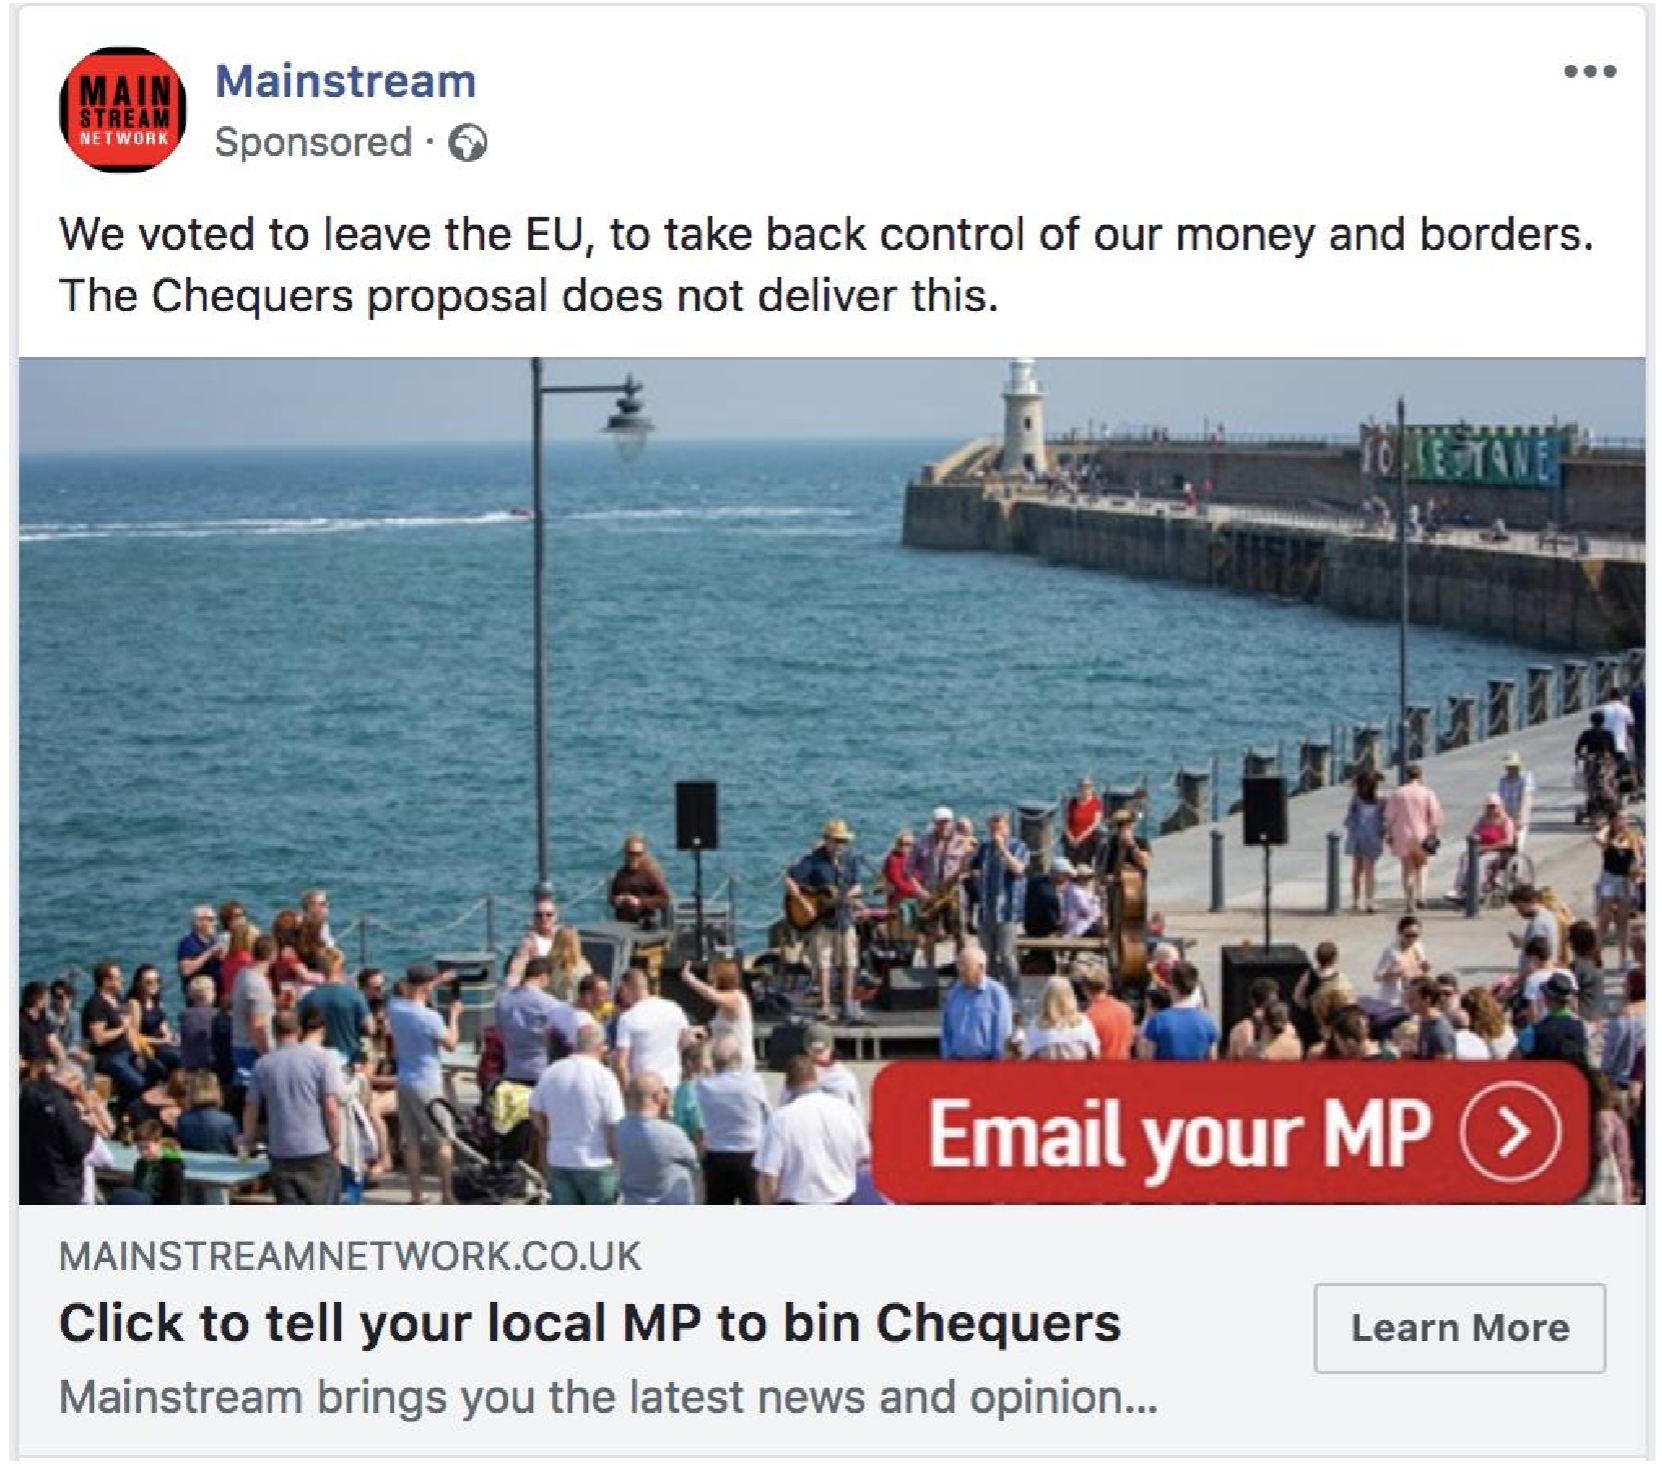 A screenshot of a Facebook advert from Mainstream showing the coast at Folkestone, dismissing the Chequers Brexit deal